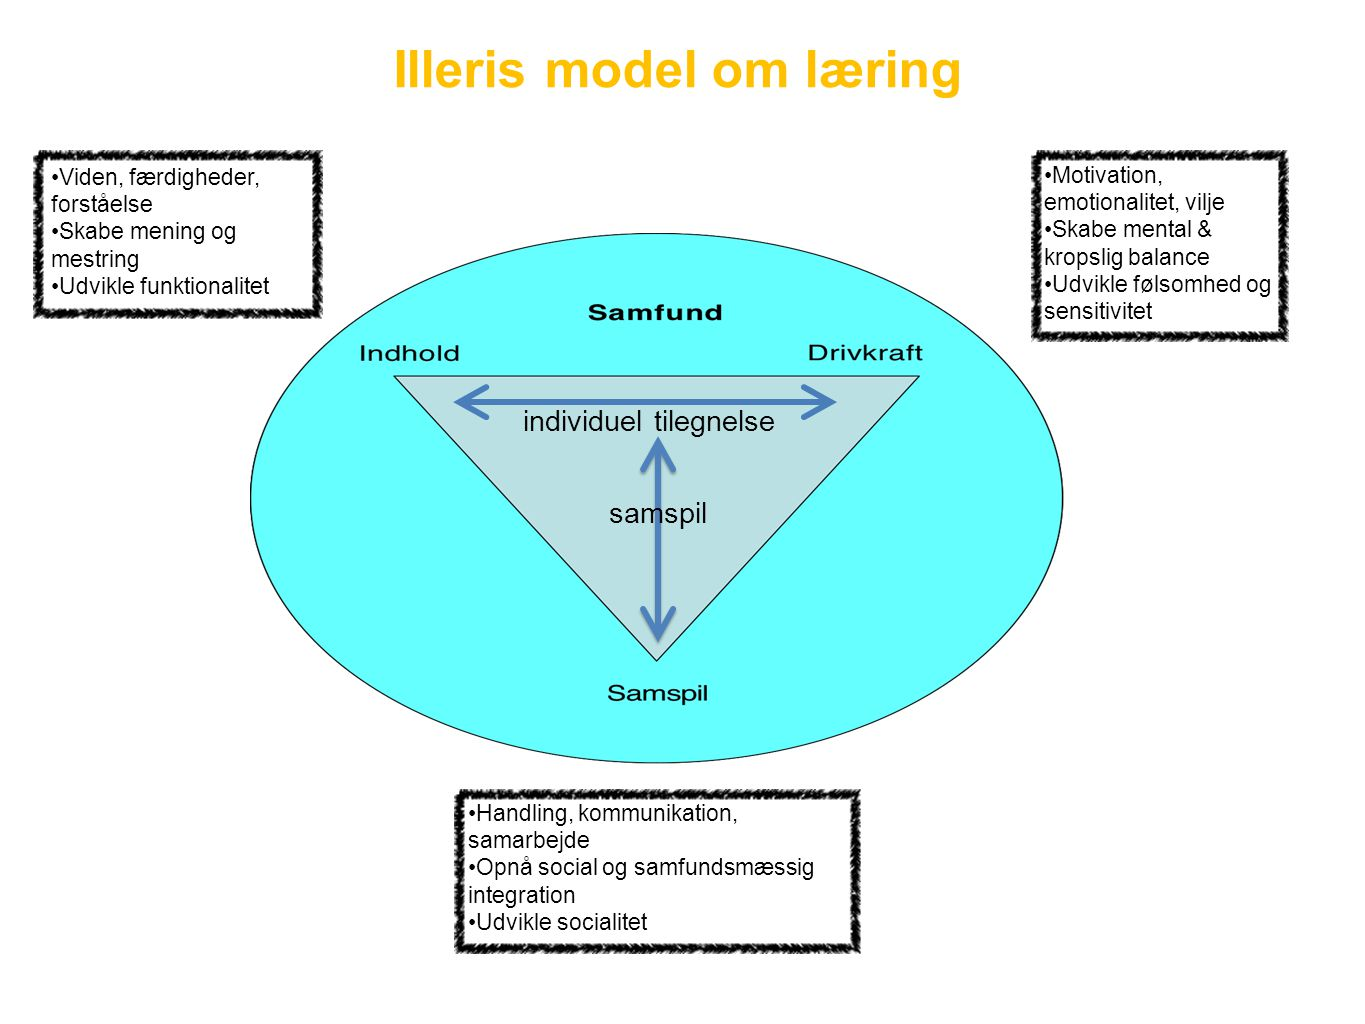 Illeris model om læring